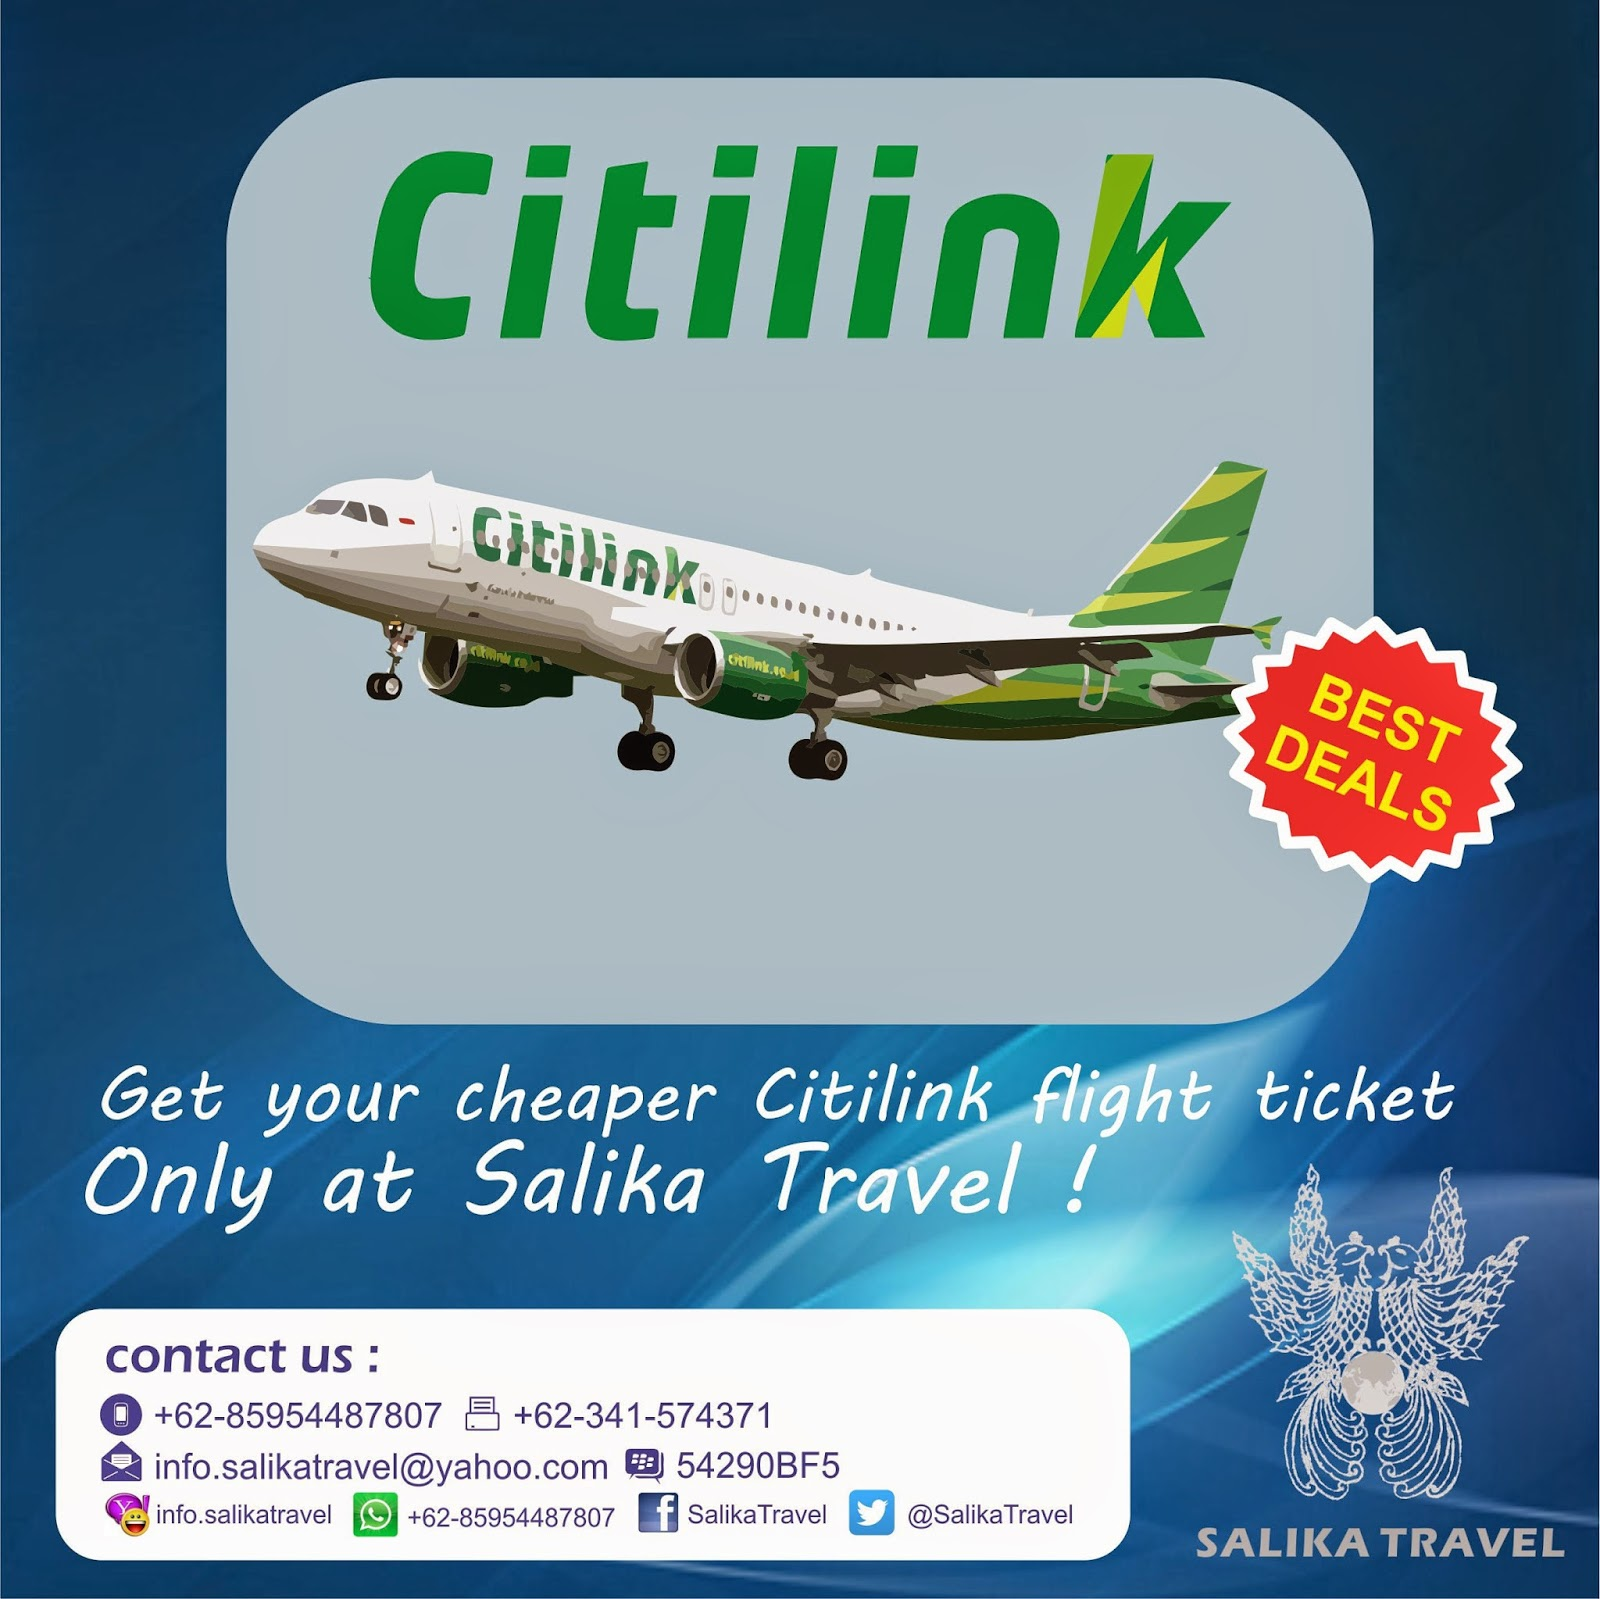 Citilink - Salika Travel